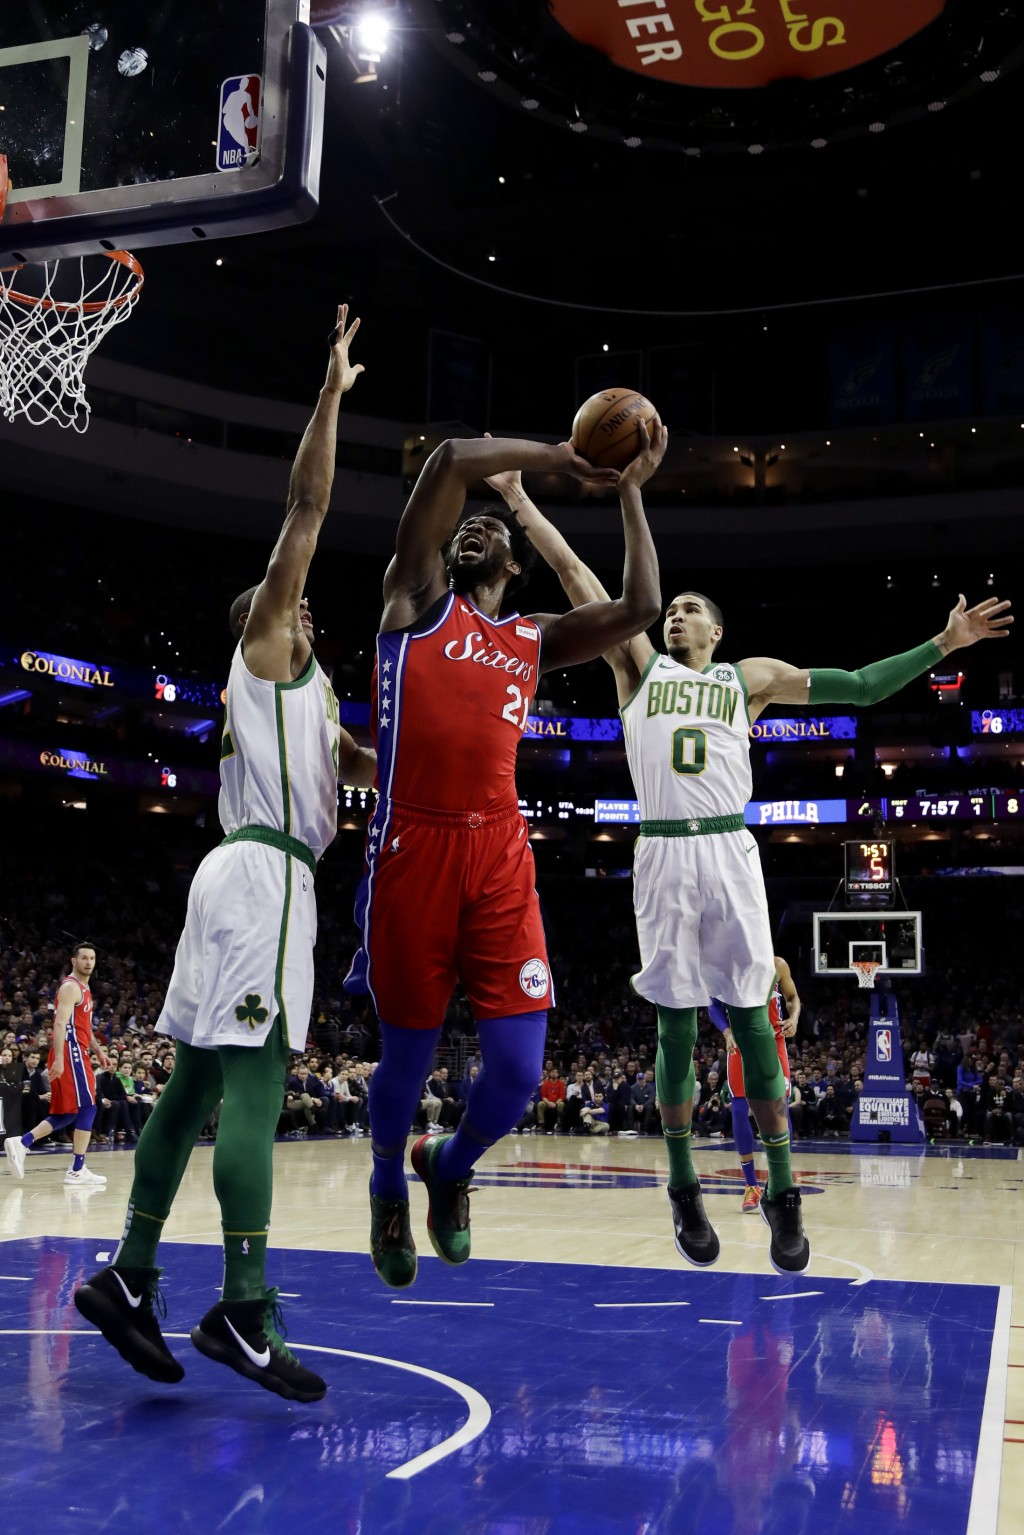 Philadelphia 76ers' Joel Embiid, center, goes up for a shot between Boston Celtics' Al Horford, left, and Jayson Tatum during the first half of an NBA